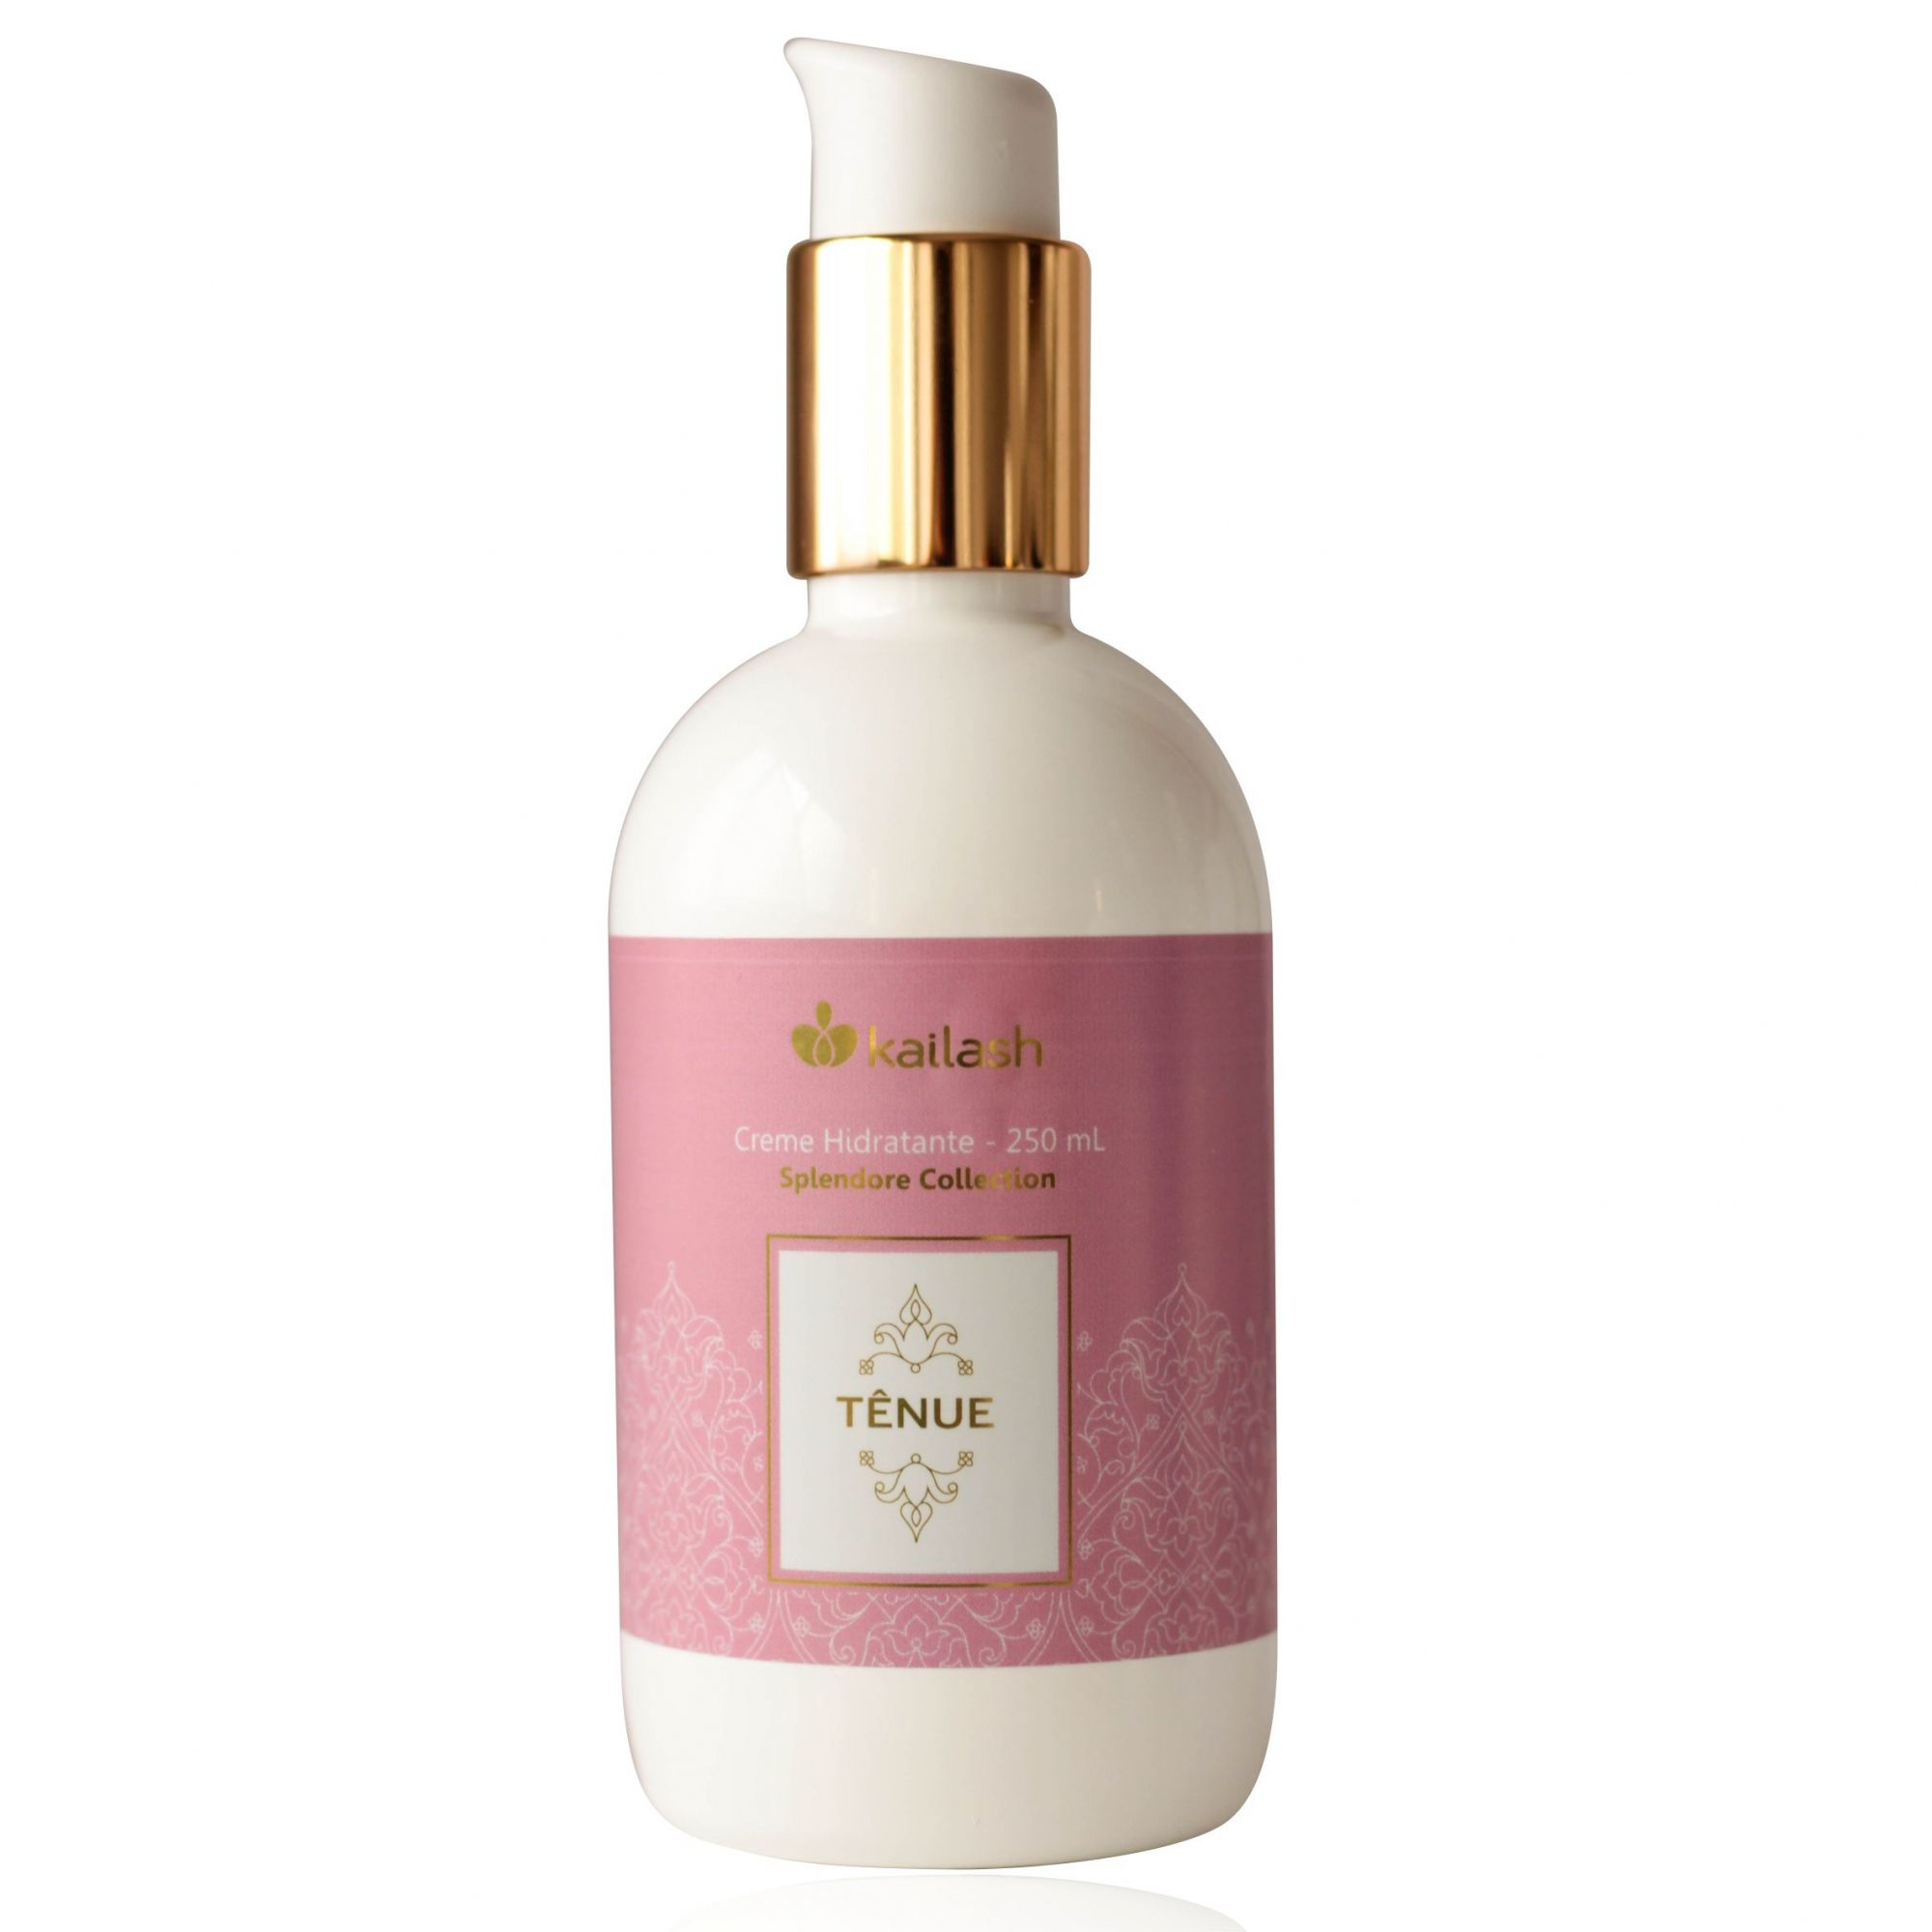 Creme Hidratante 250mL Tênue